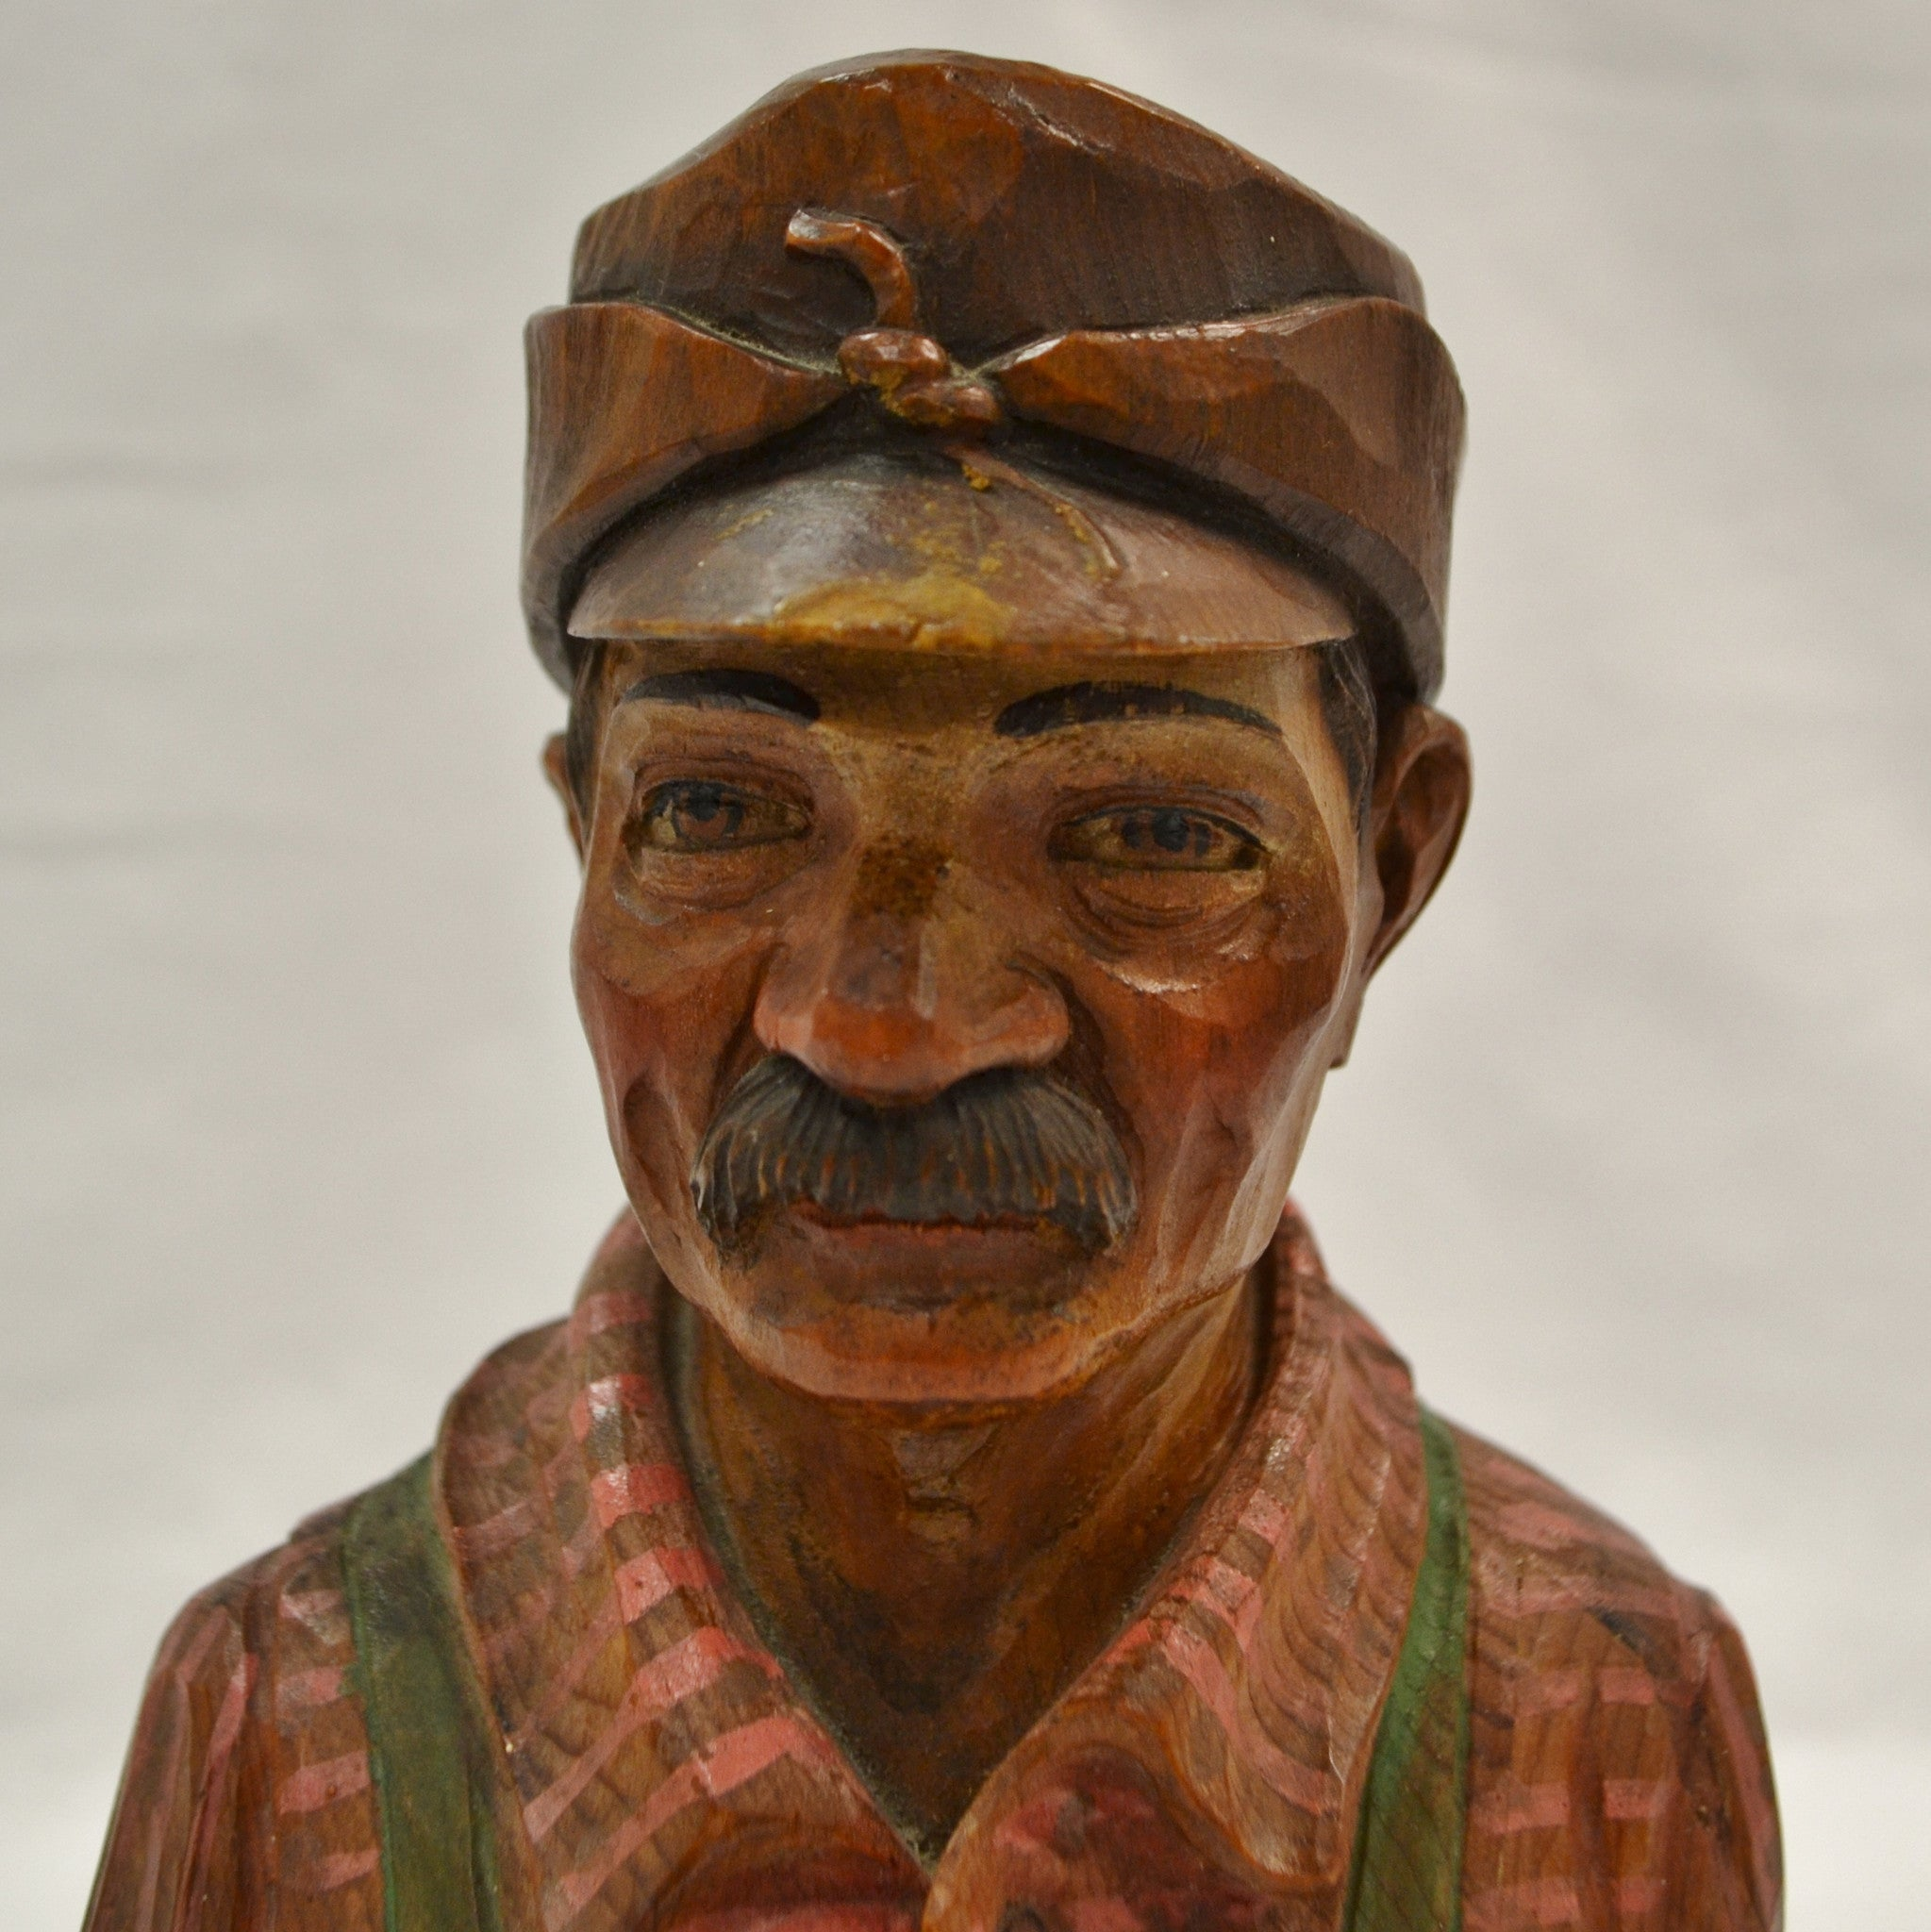 lumberjack bust wood carving by Duquet